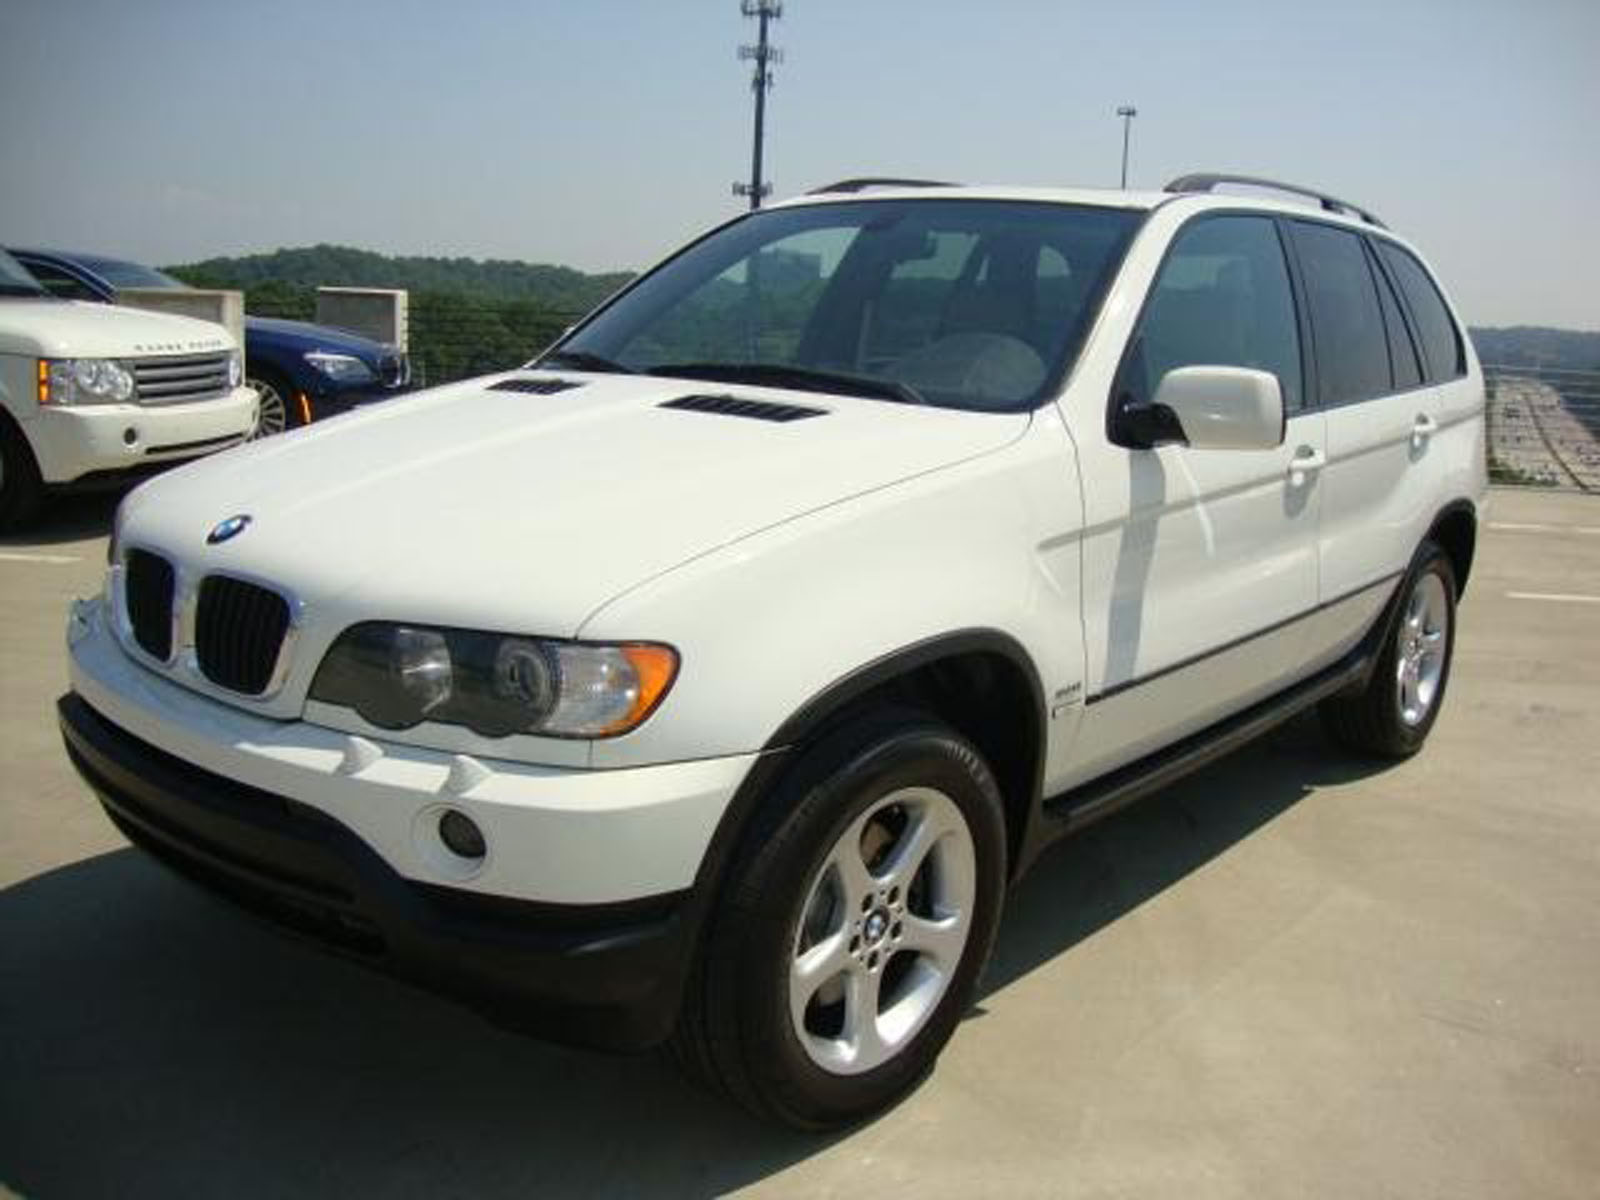 Suv For Sale Under 5000 >> 2001 BMW X5 For Sale | Michigan